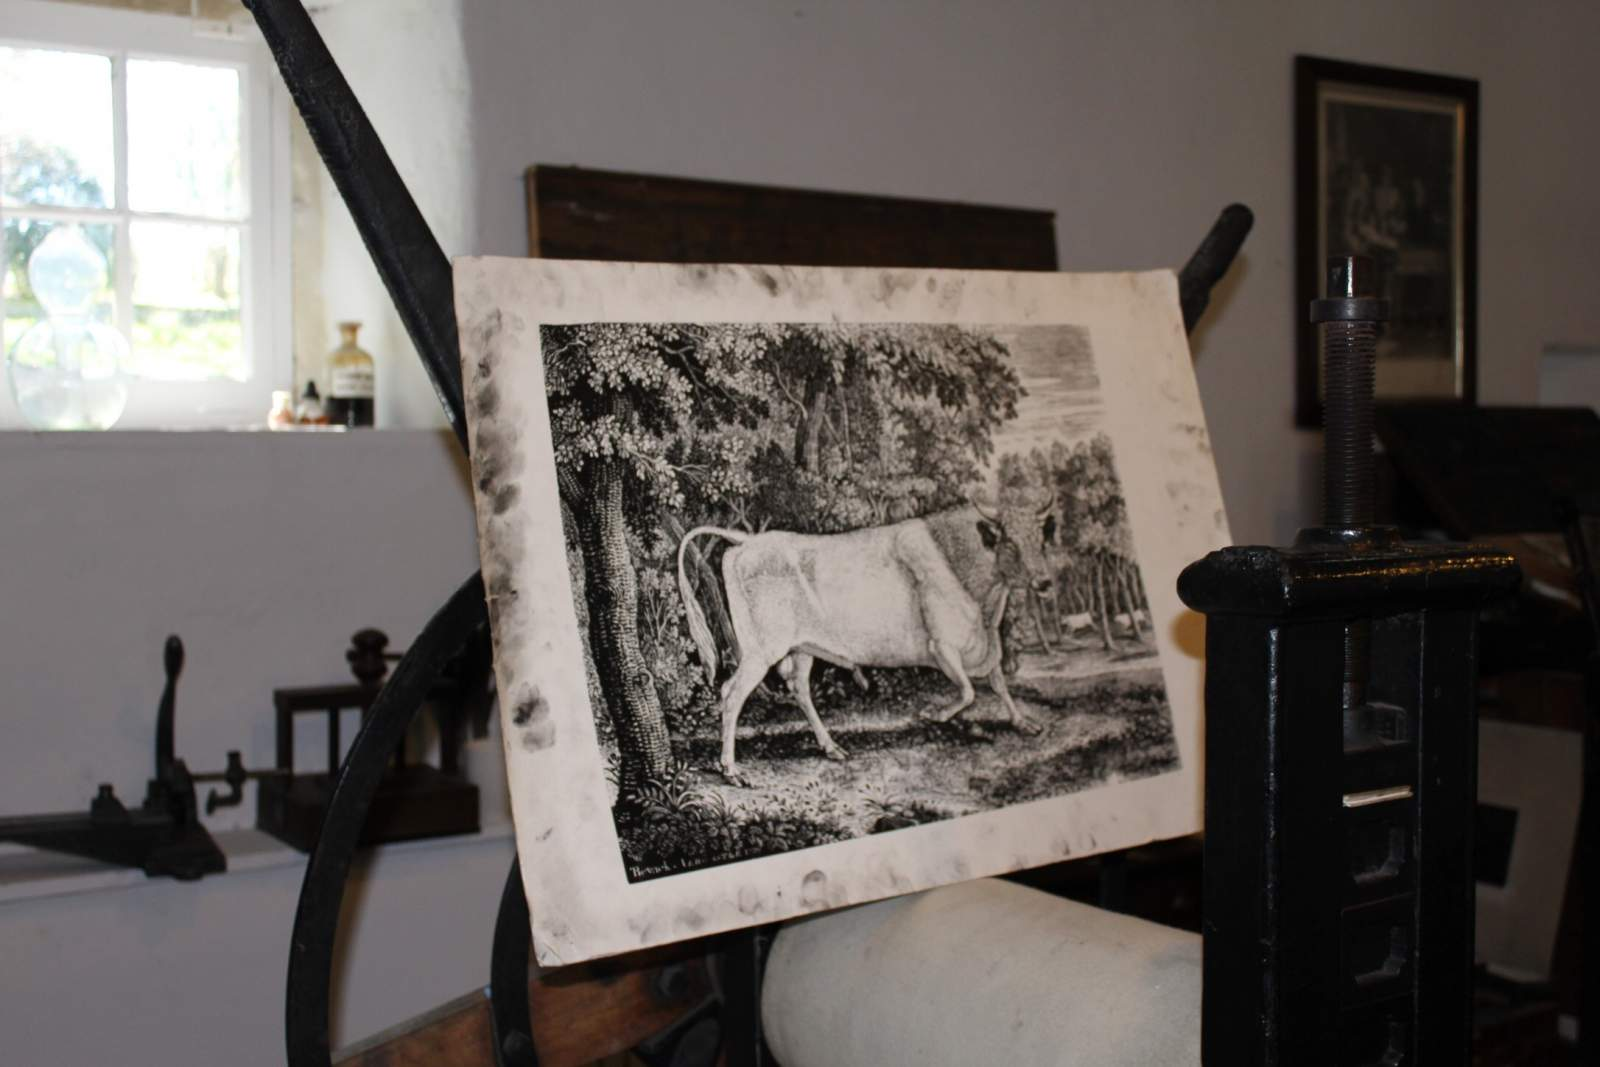 thomas bewick engraving printing demonstration at cherryburn